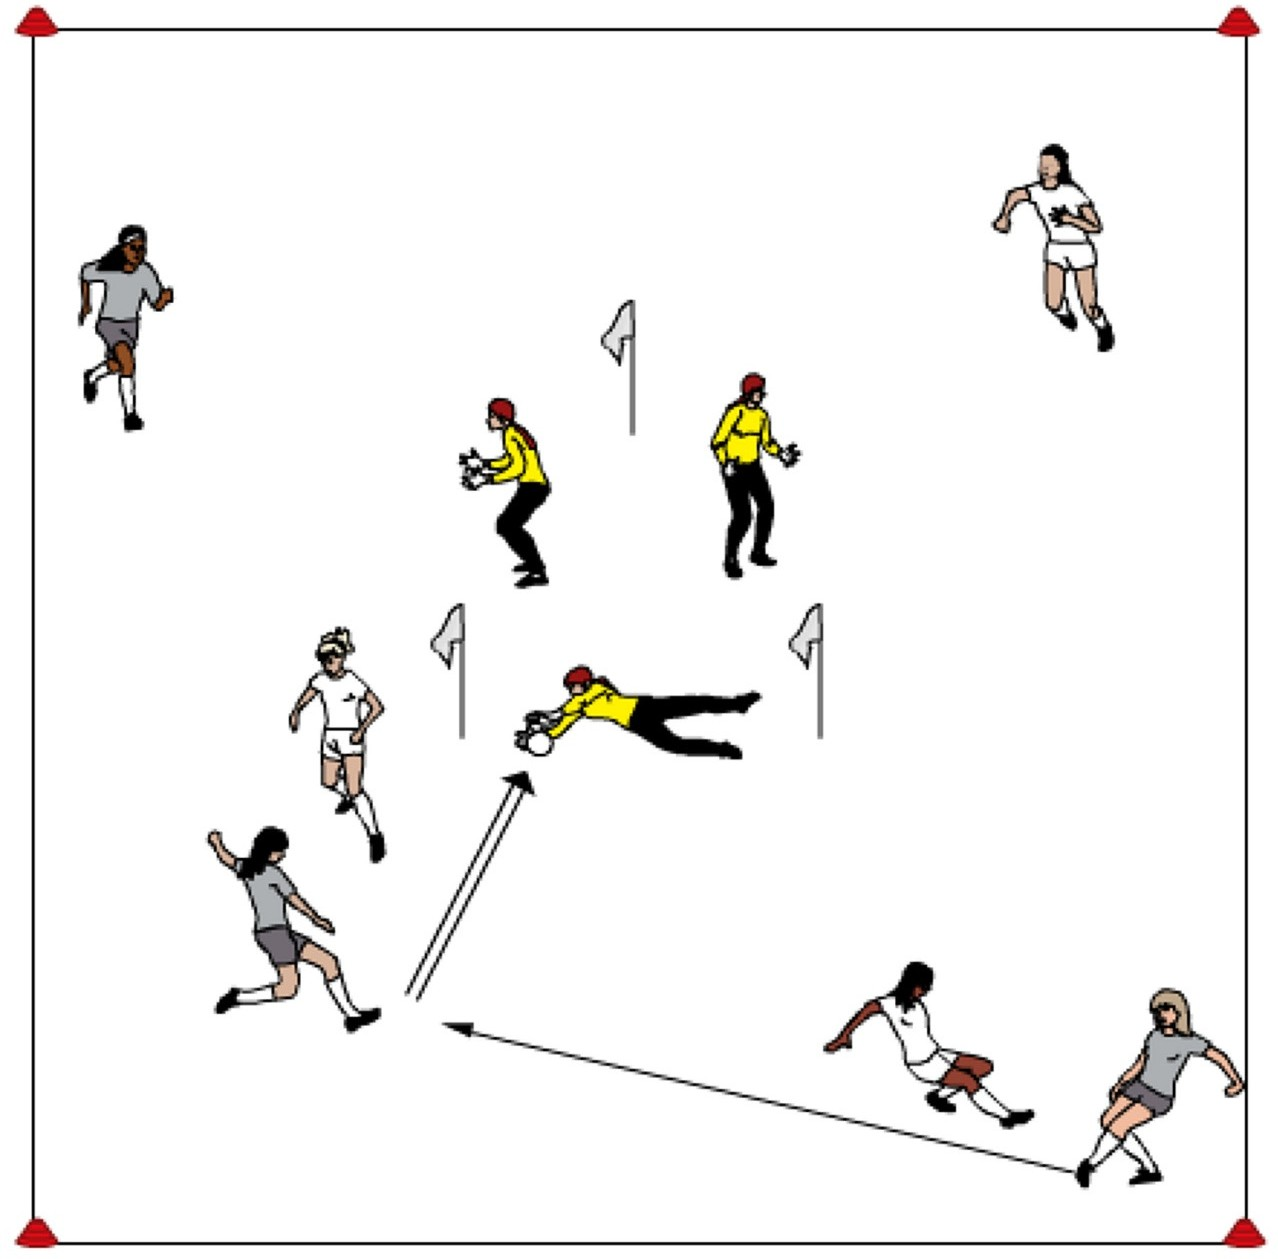 AASC_Fig_33_GK_TriangleGoal